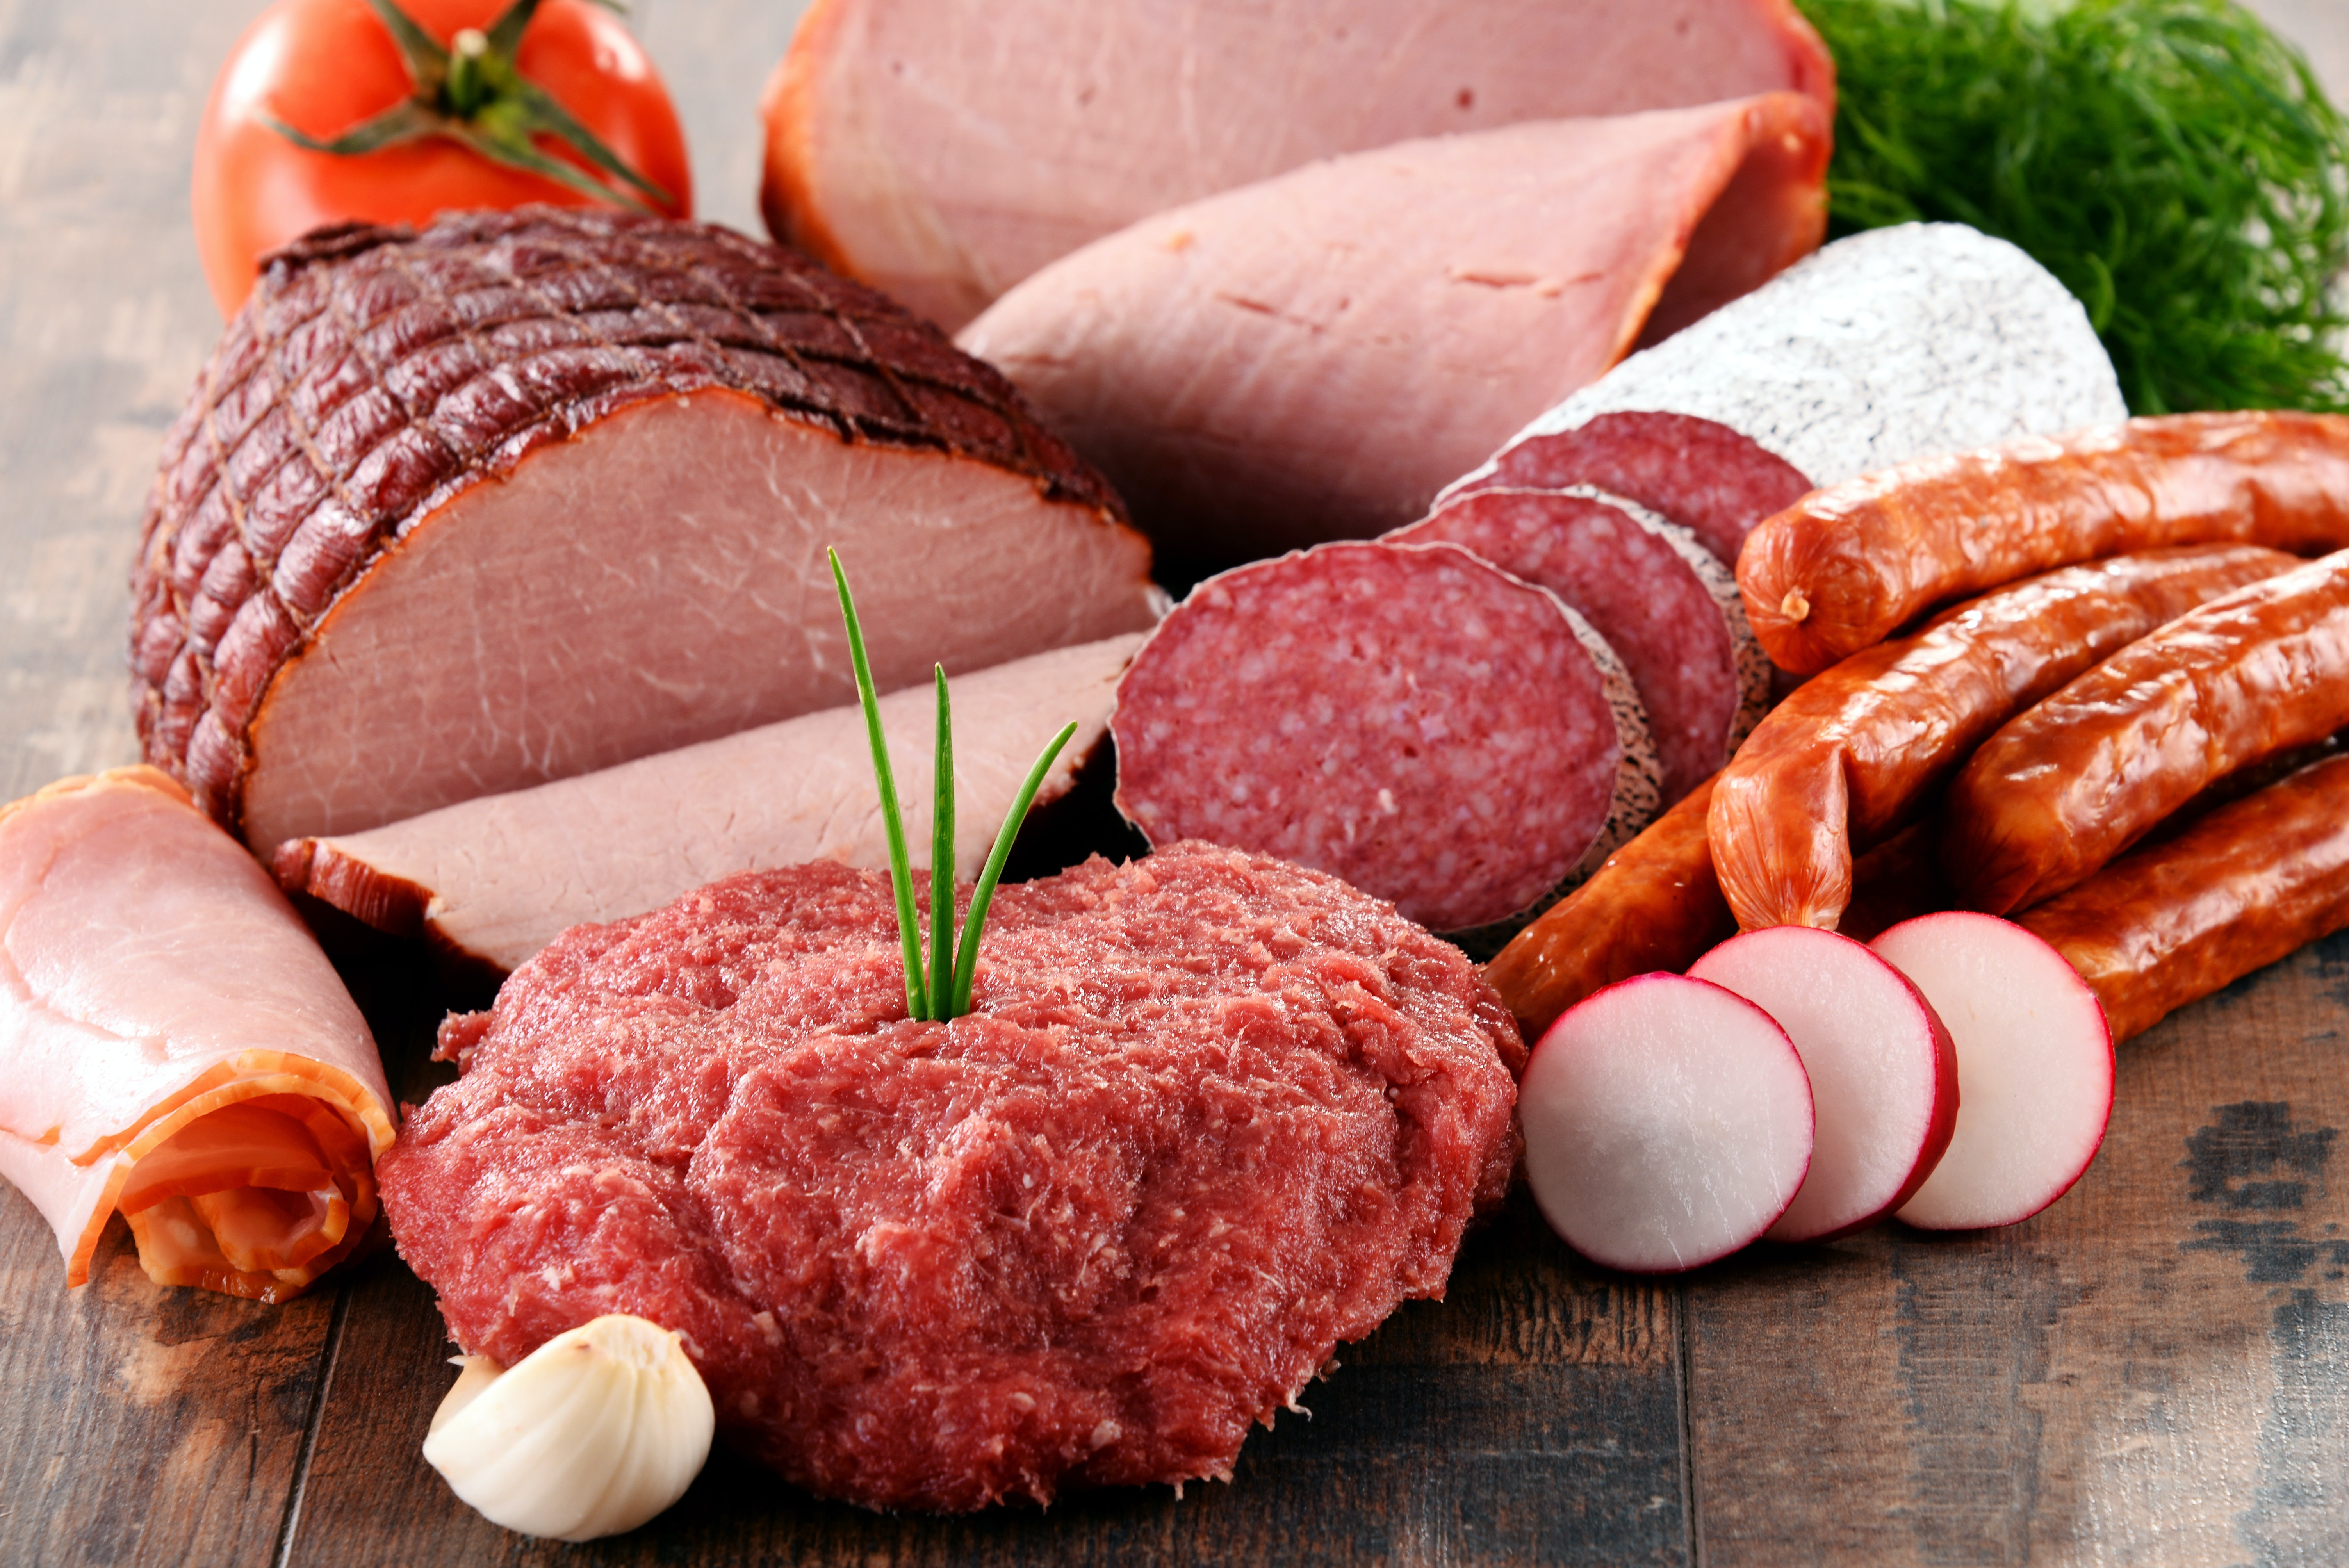 Image result for Processed meat: Less than 20 grams a day